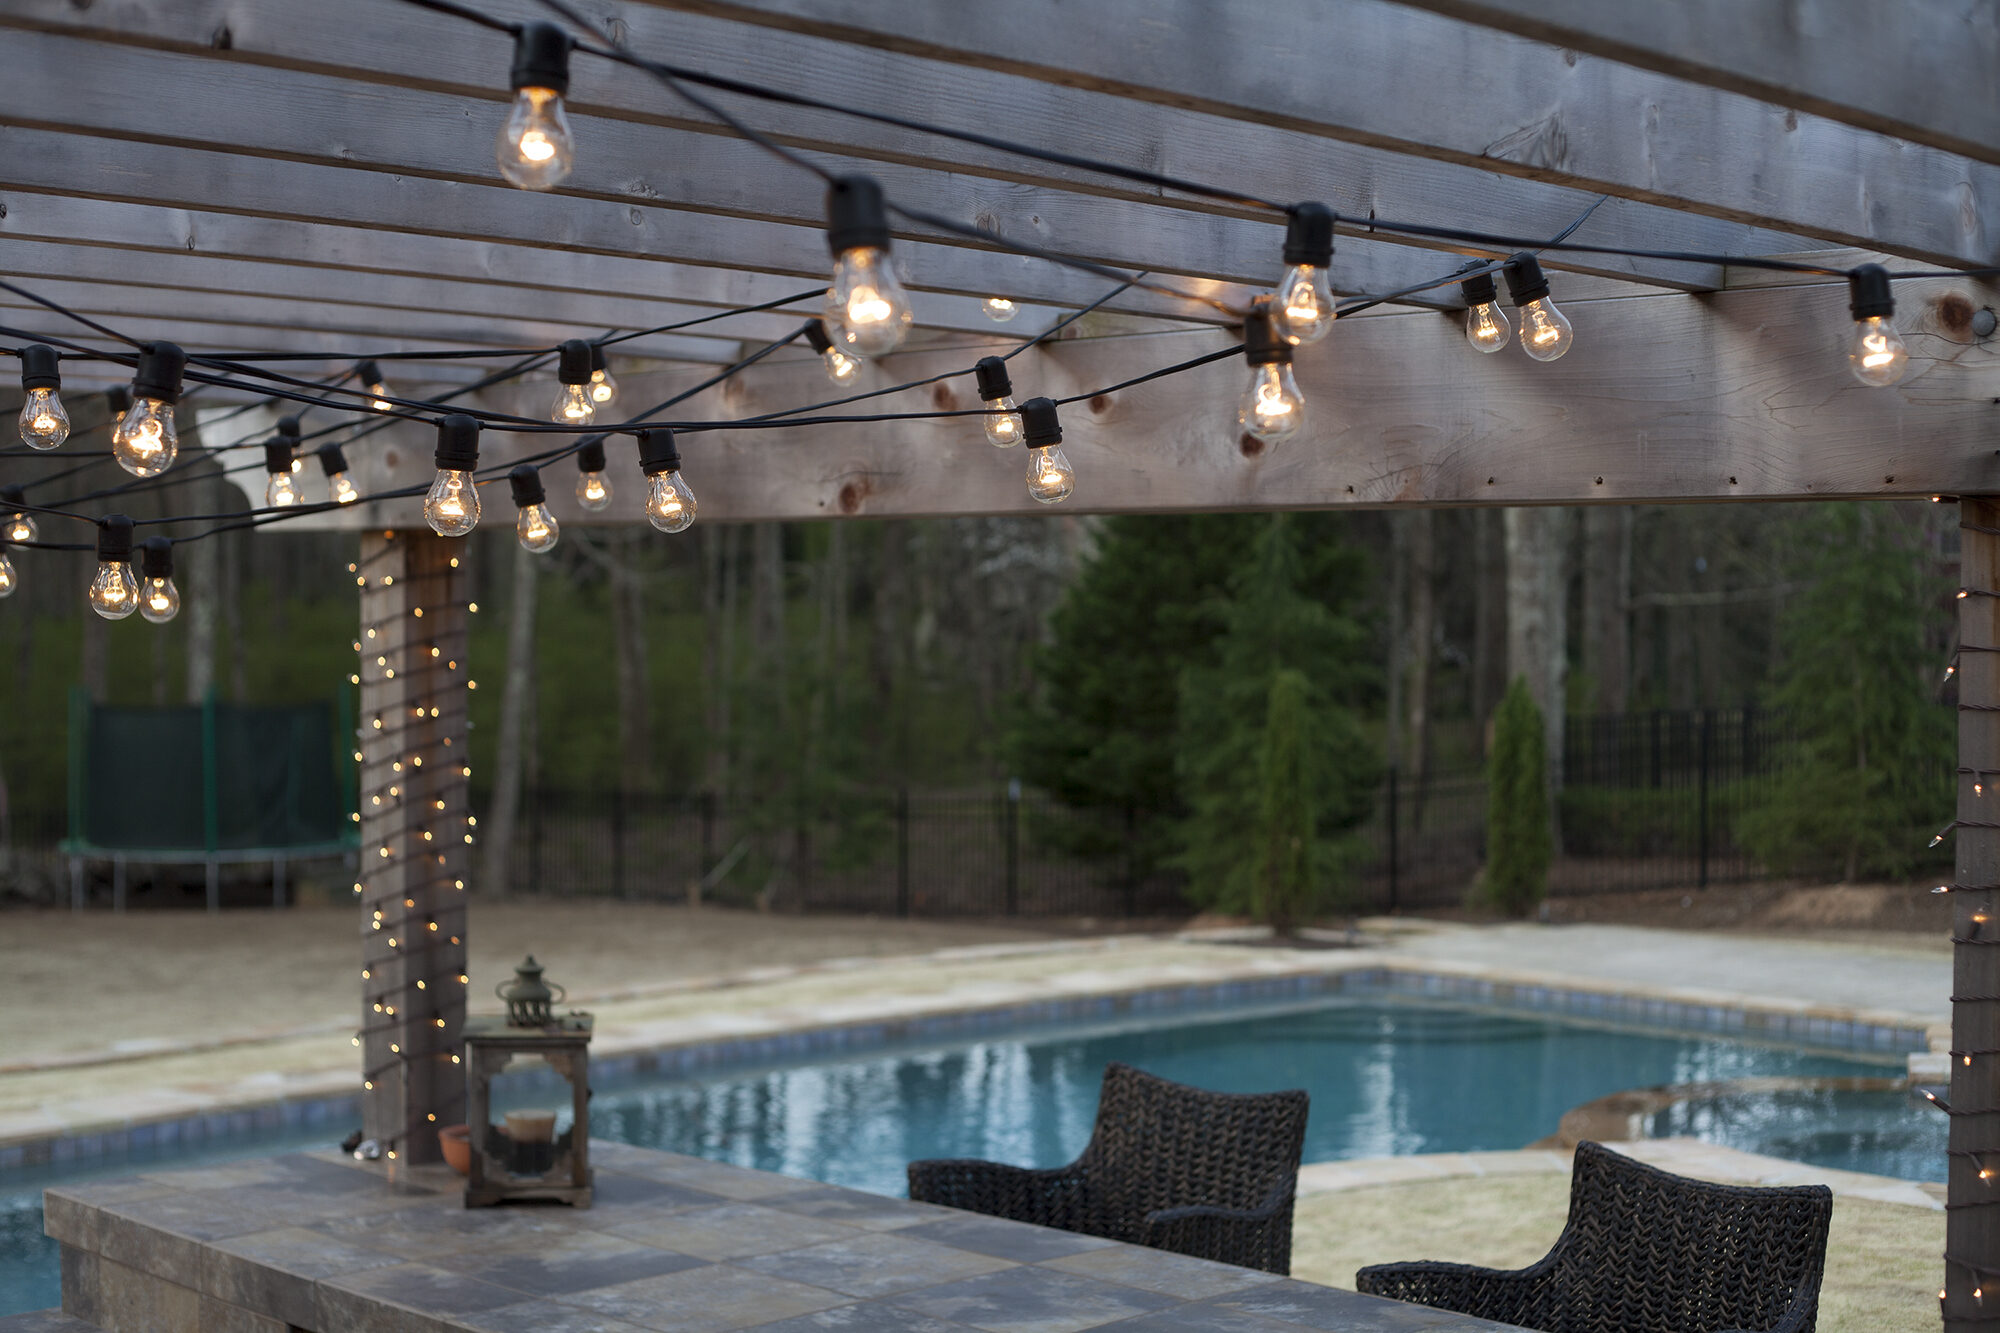 Italian Hanging String Lights : Hanging Patio String Lights: A Pattern of Perfection - Yard Envy